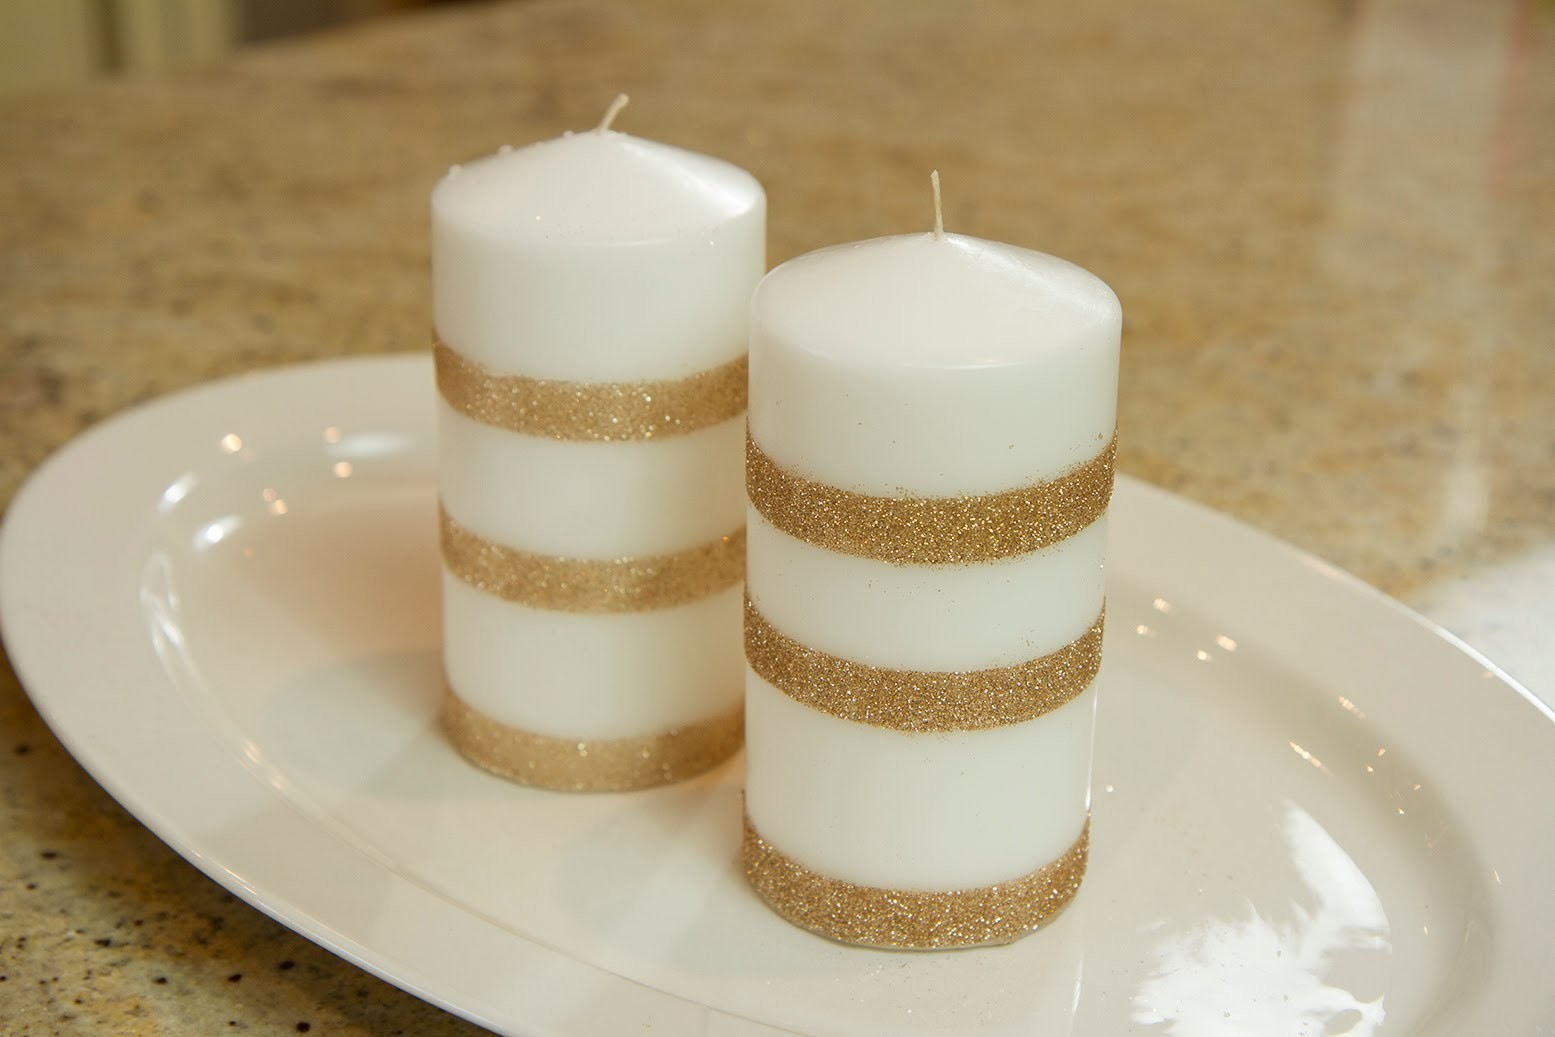 Glitter Candles - Let's Craft with ModernMom - 12 Days of Christmas (Day 9)